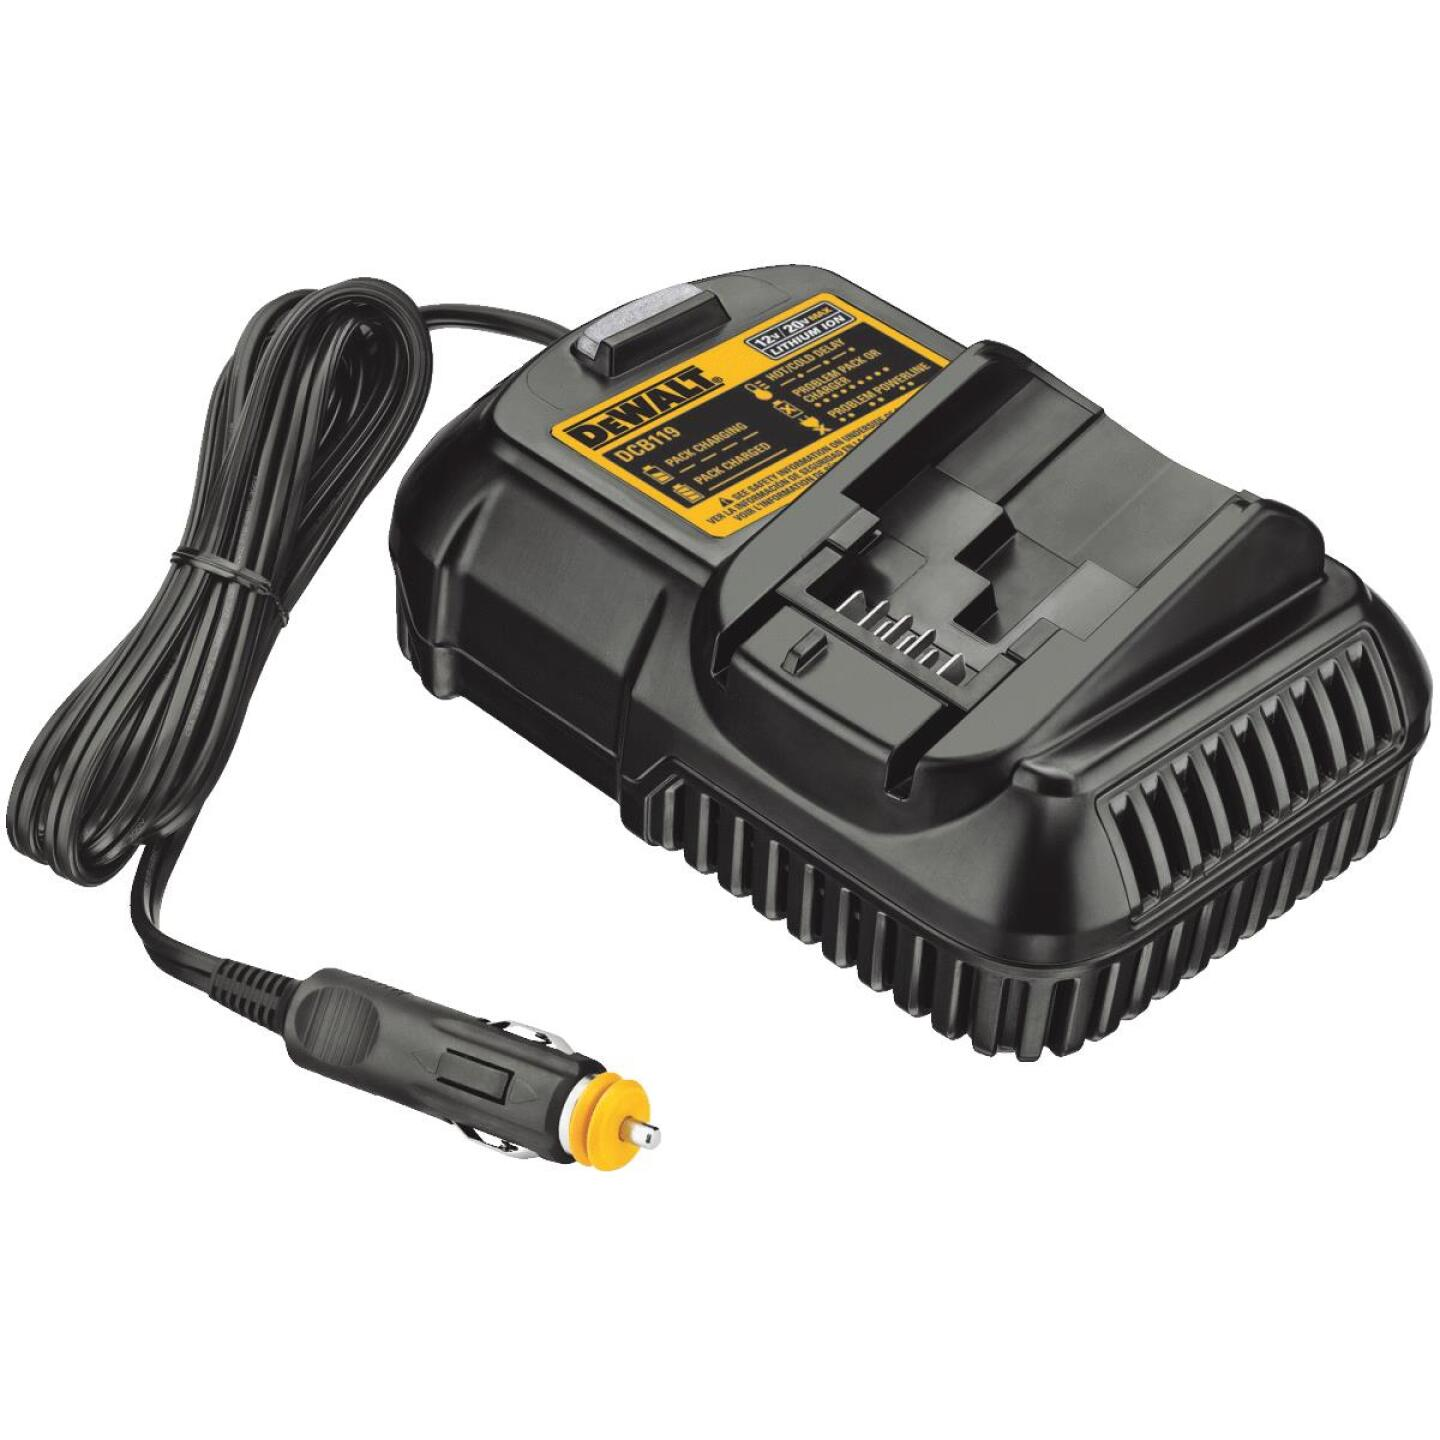 DeWalt 12-Volt/20-Volt MAX Lithium-Ion Vehicle Battery Charger Image 1